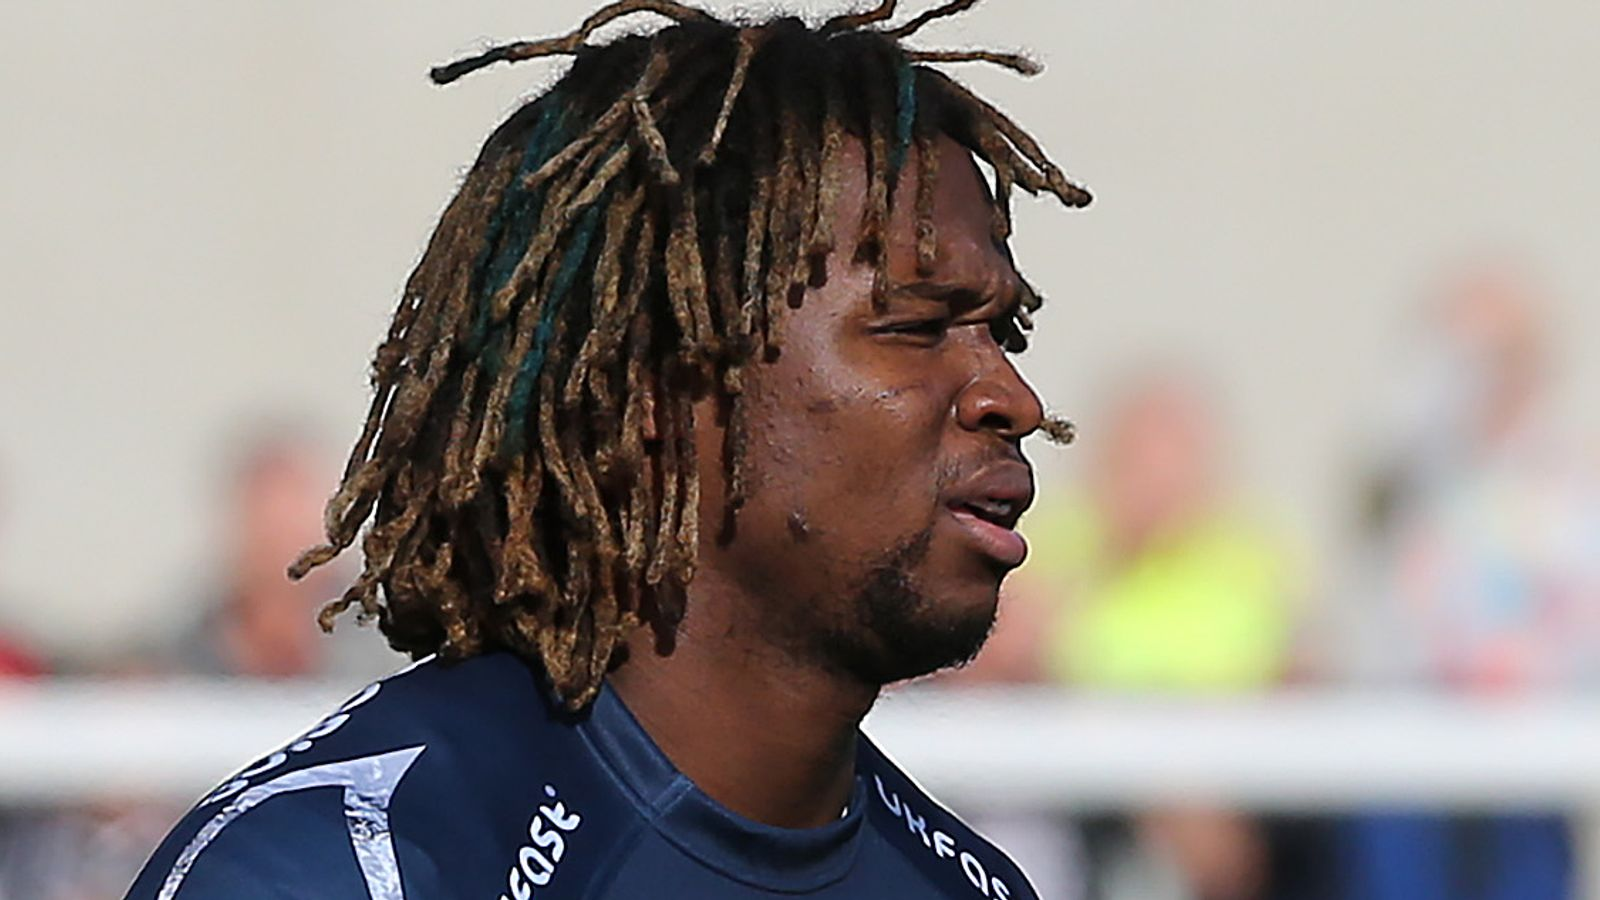 Sale 36-3 Leicester: Marland Yarde hat-trick sends Sharks second